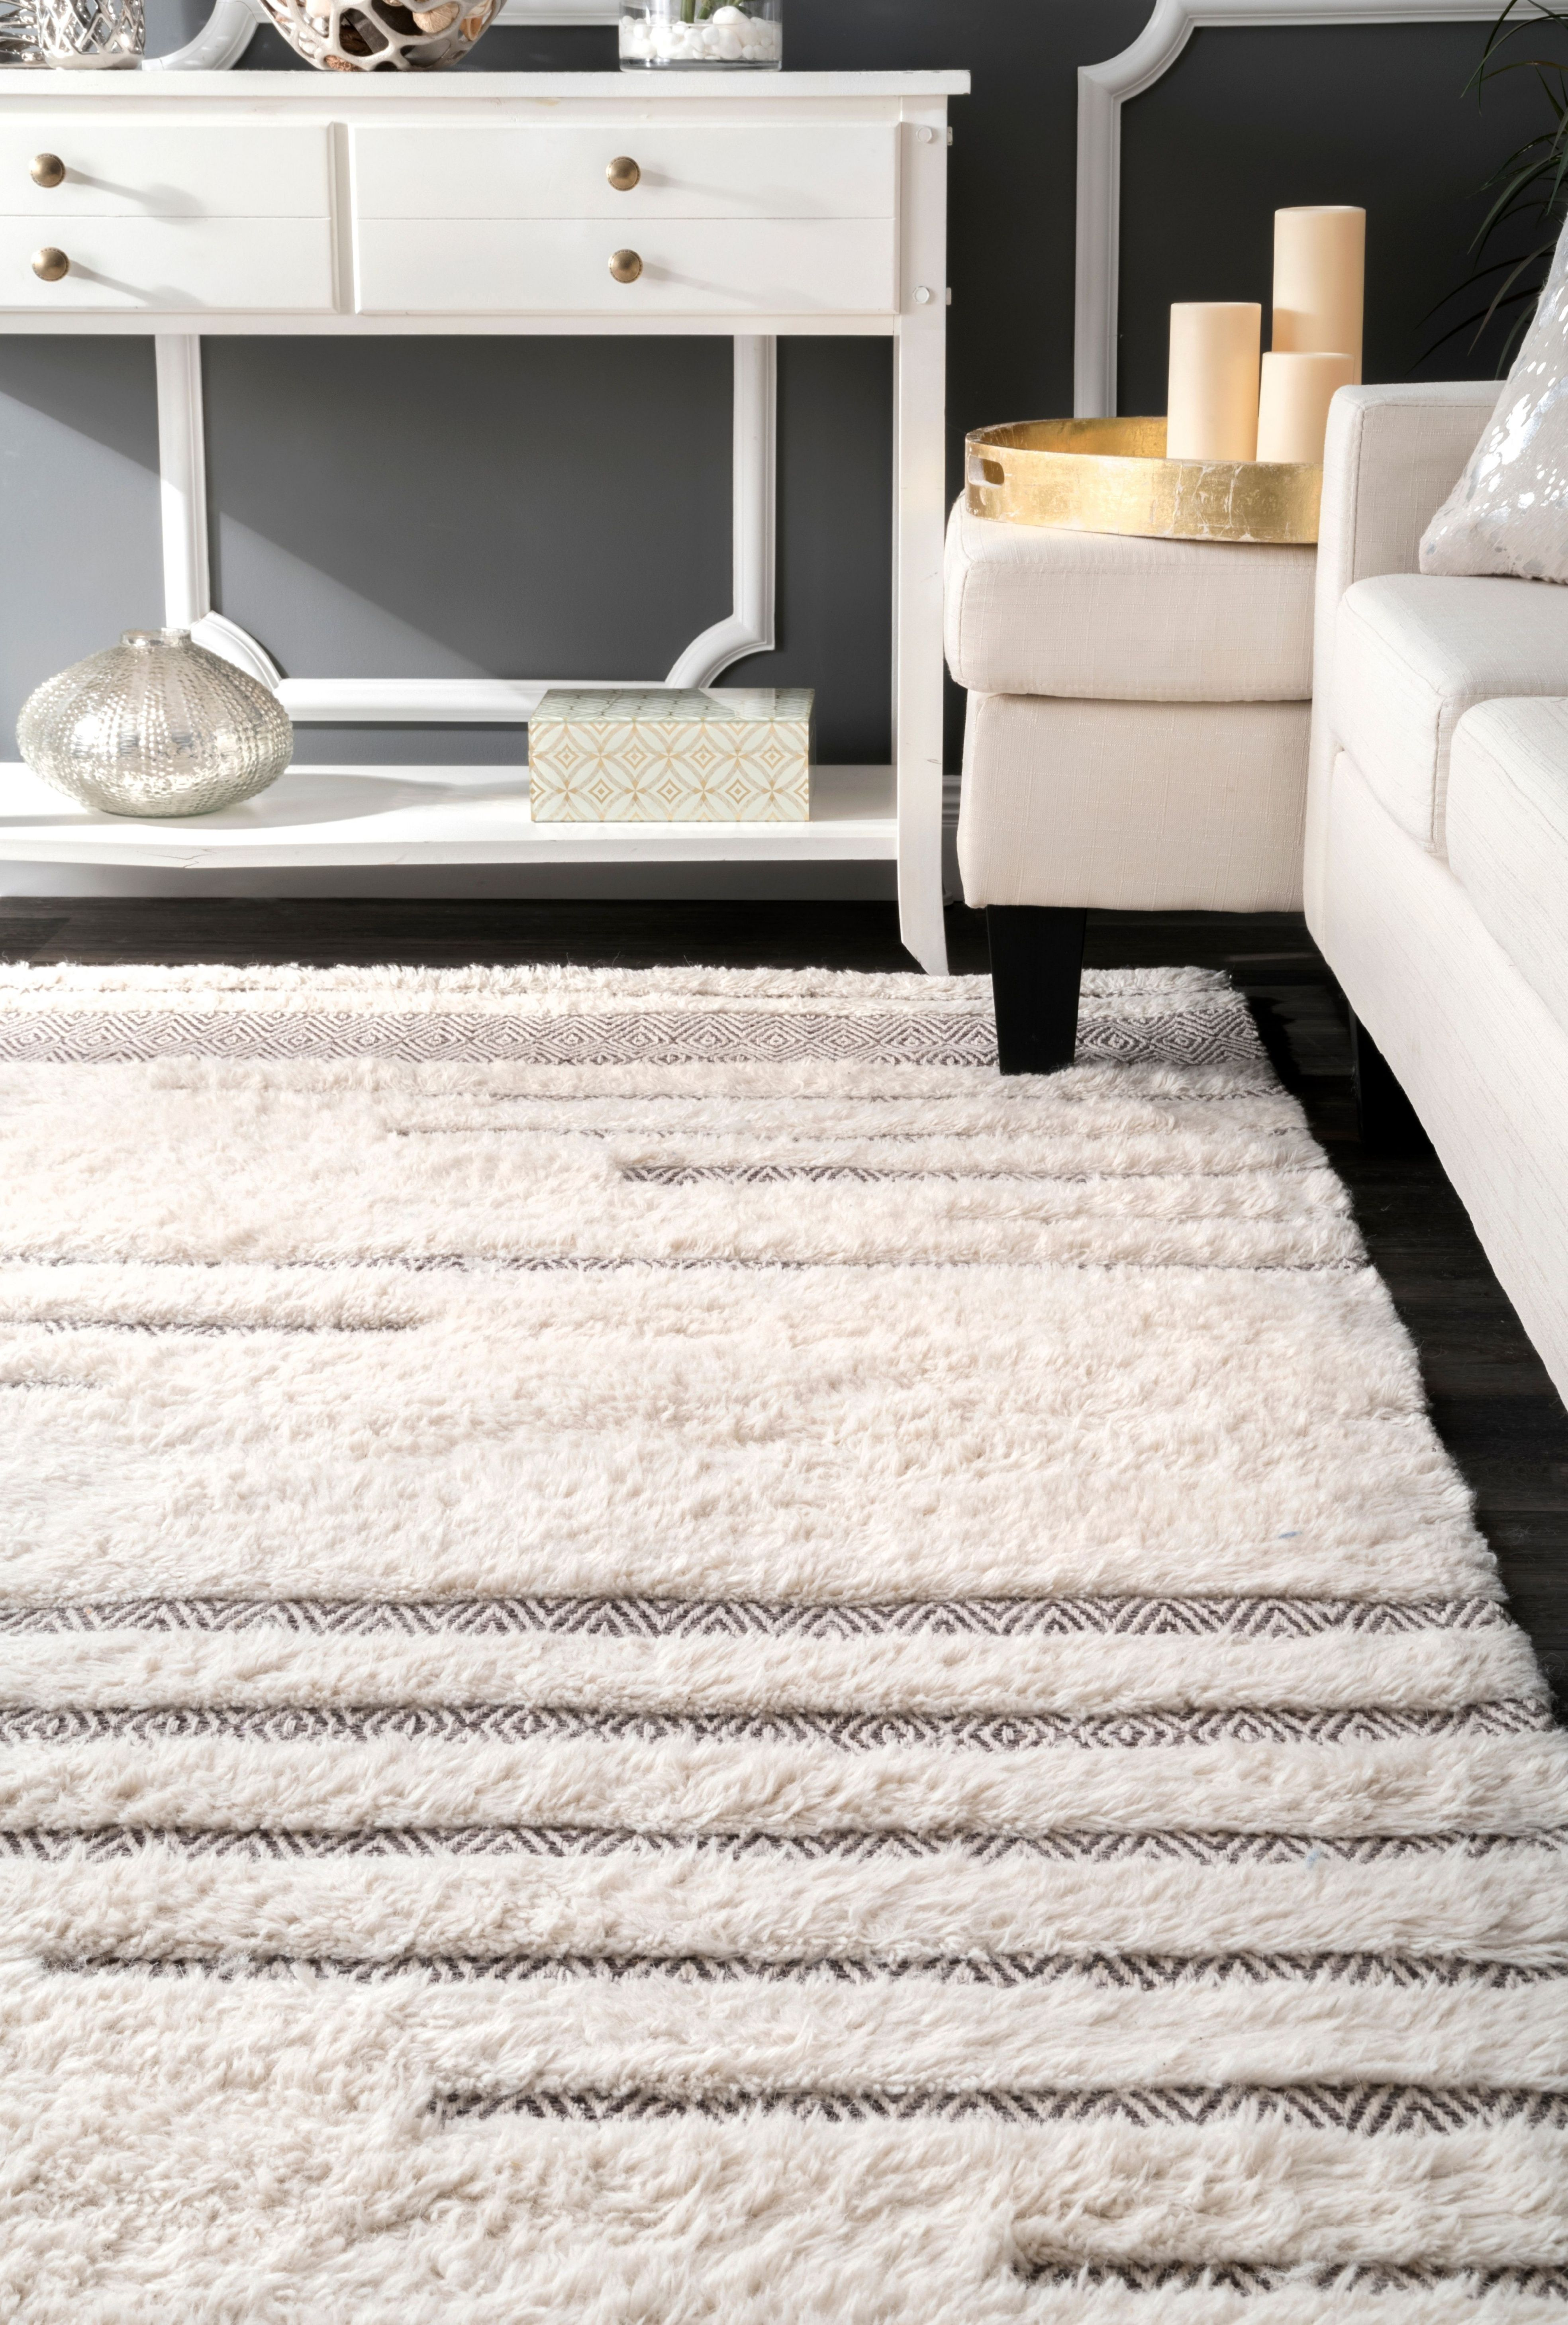 Moroccan Rugs For Bedroom Rugs Usa Area Rugs In Many Styles Including Contemporary Braided Shag Rug Living Room Moroccan Home Decor Rugs In Living Room